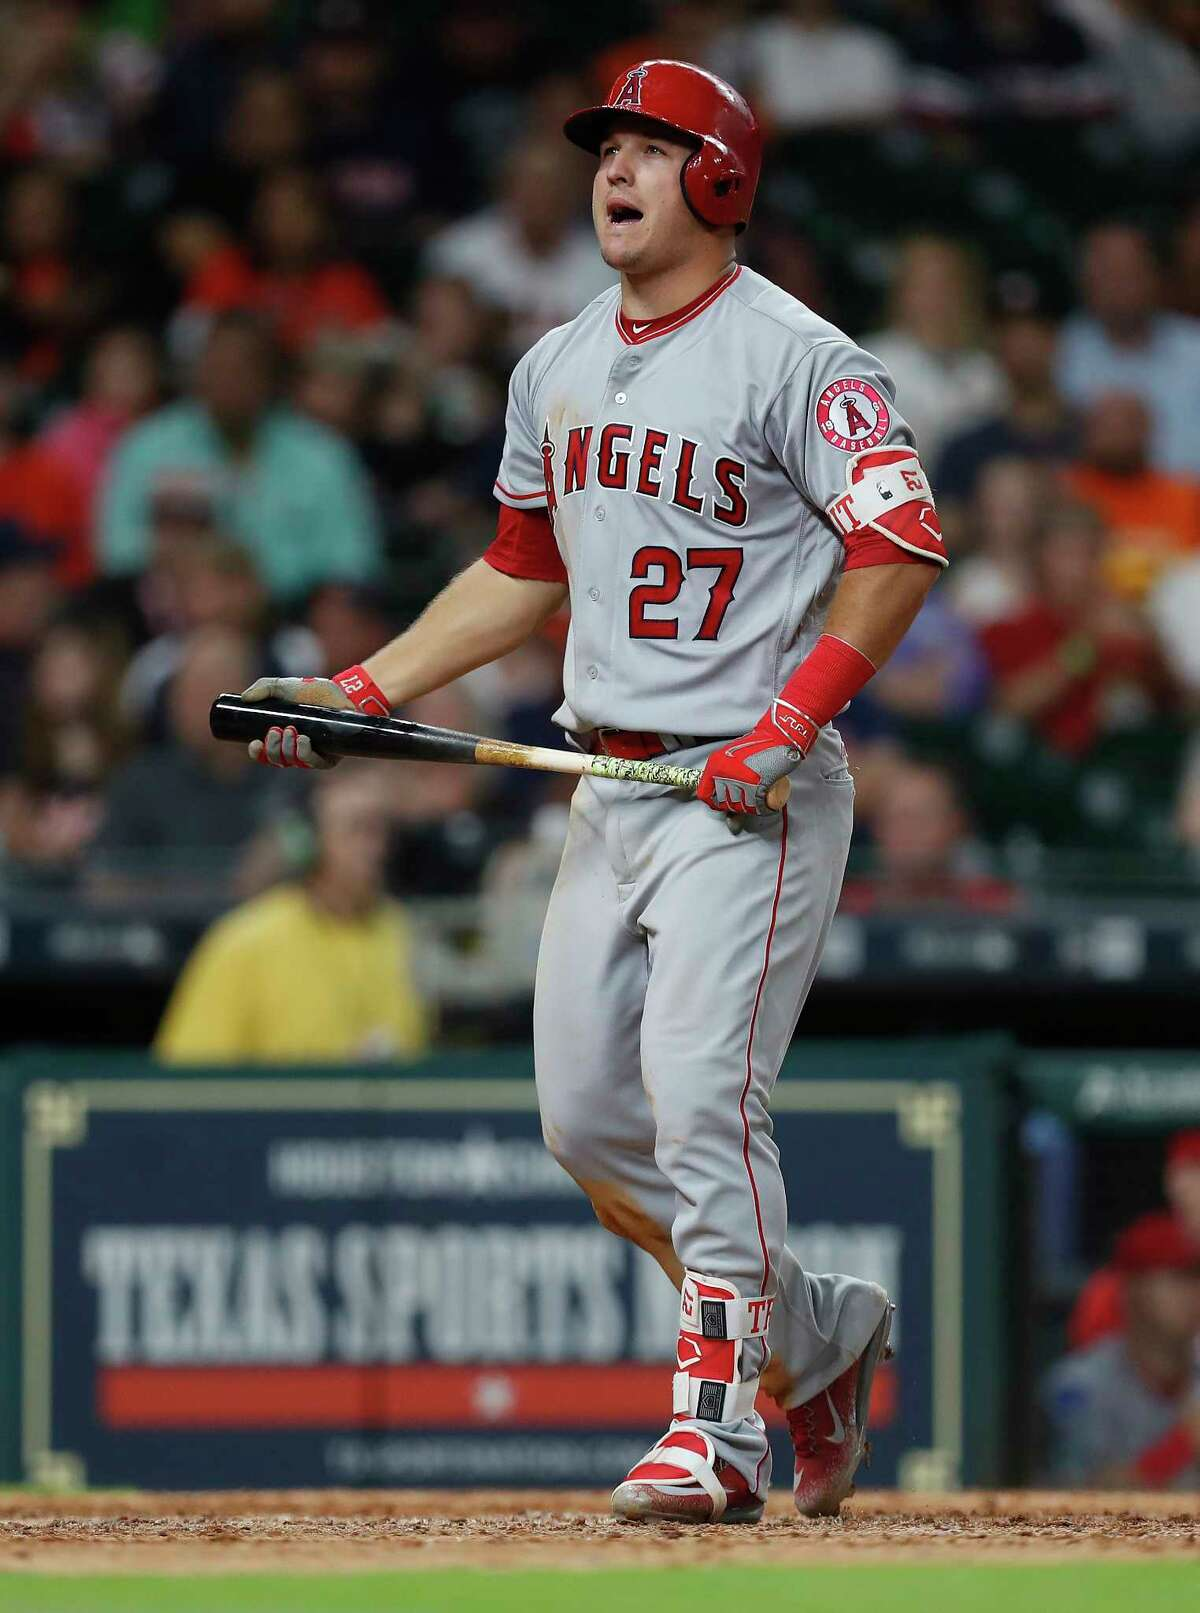 Los Angeles Angels Mike Trout (27) reacts after a called strike during the seventh inning of an MLB baseball game at Minute Maid Park, 2017, in Houston.